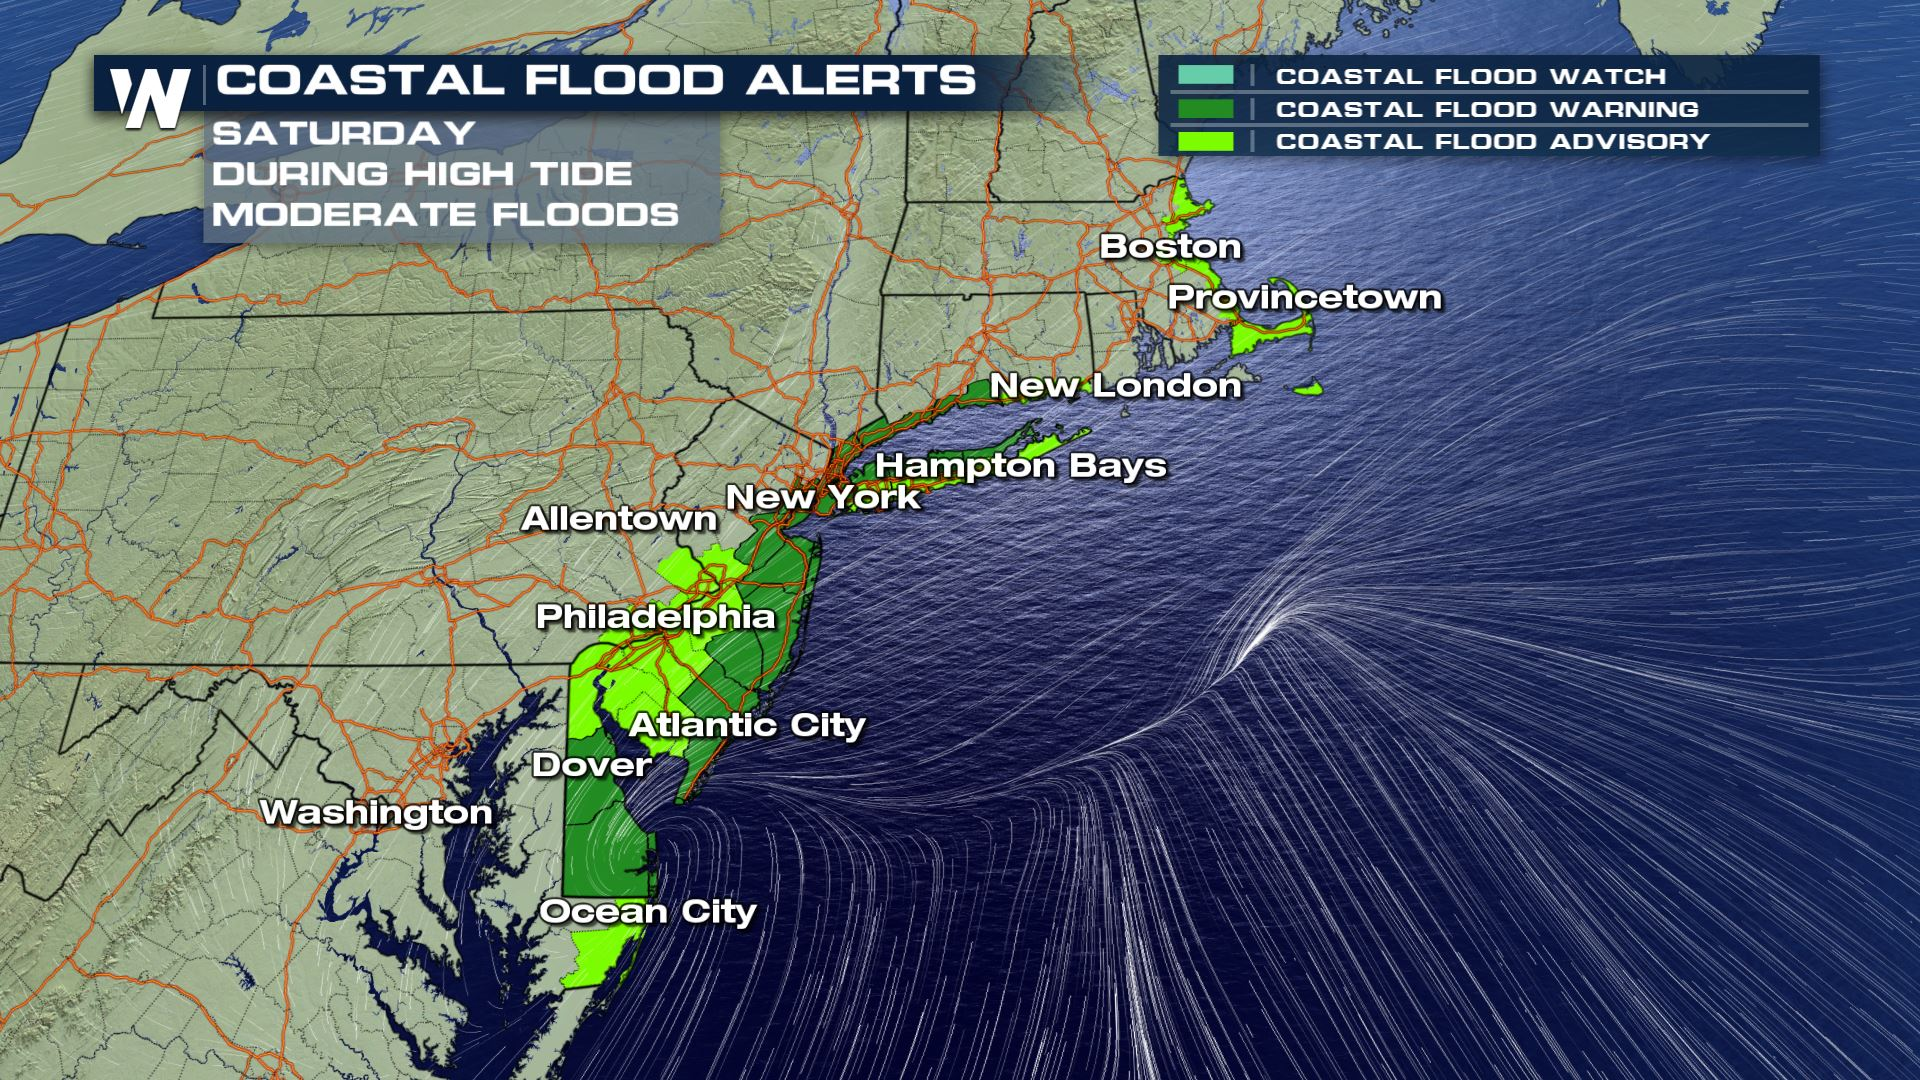 The Latest Alerts For The Nor'easter - WeatherNation